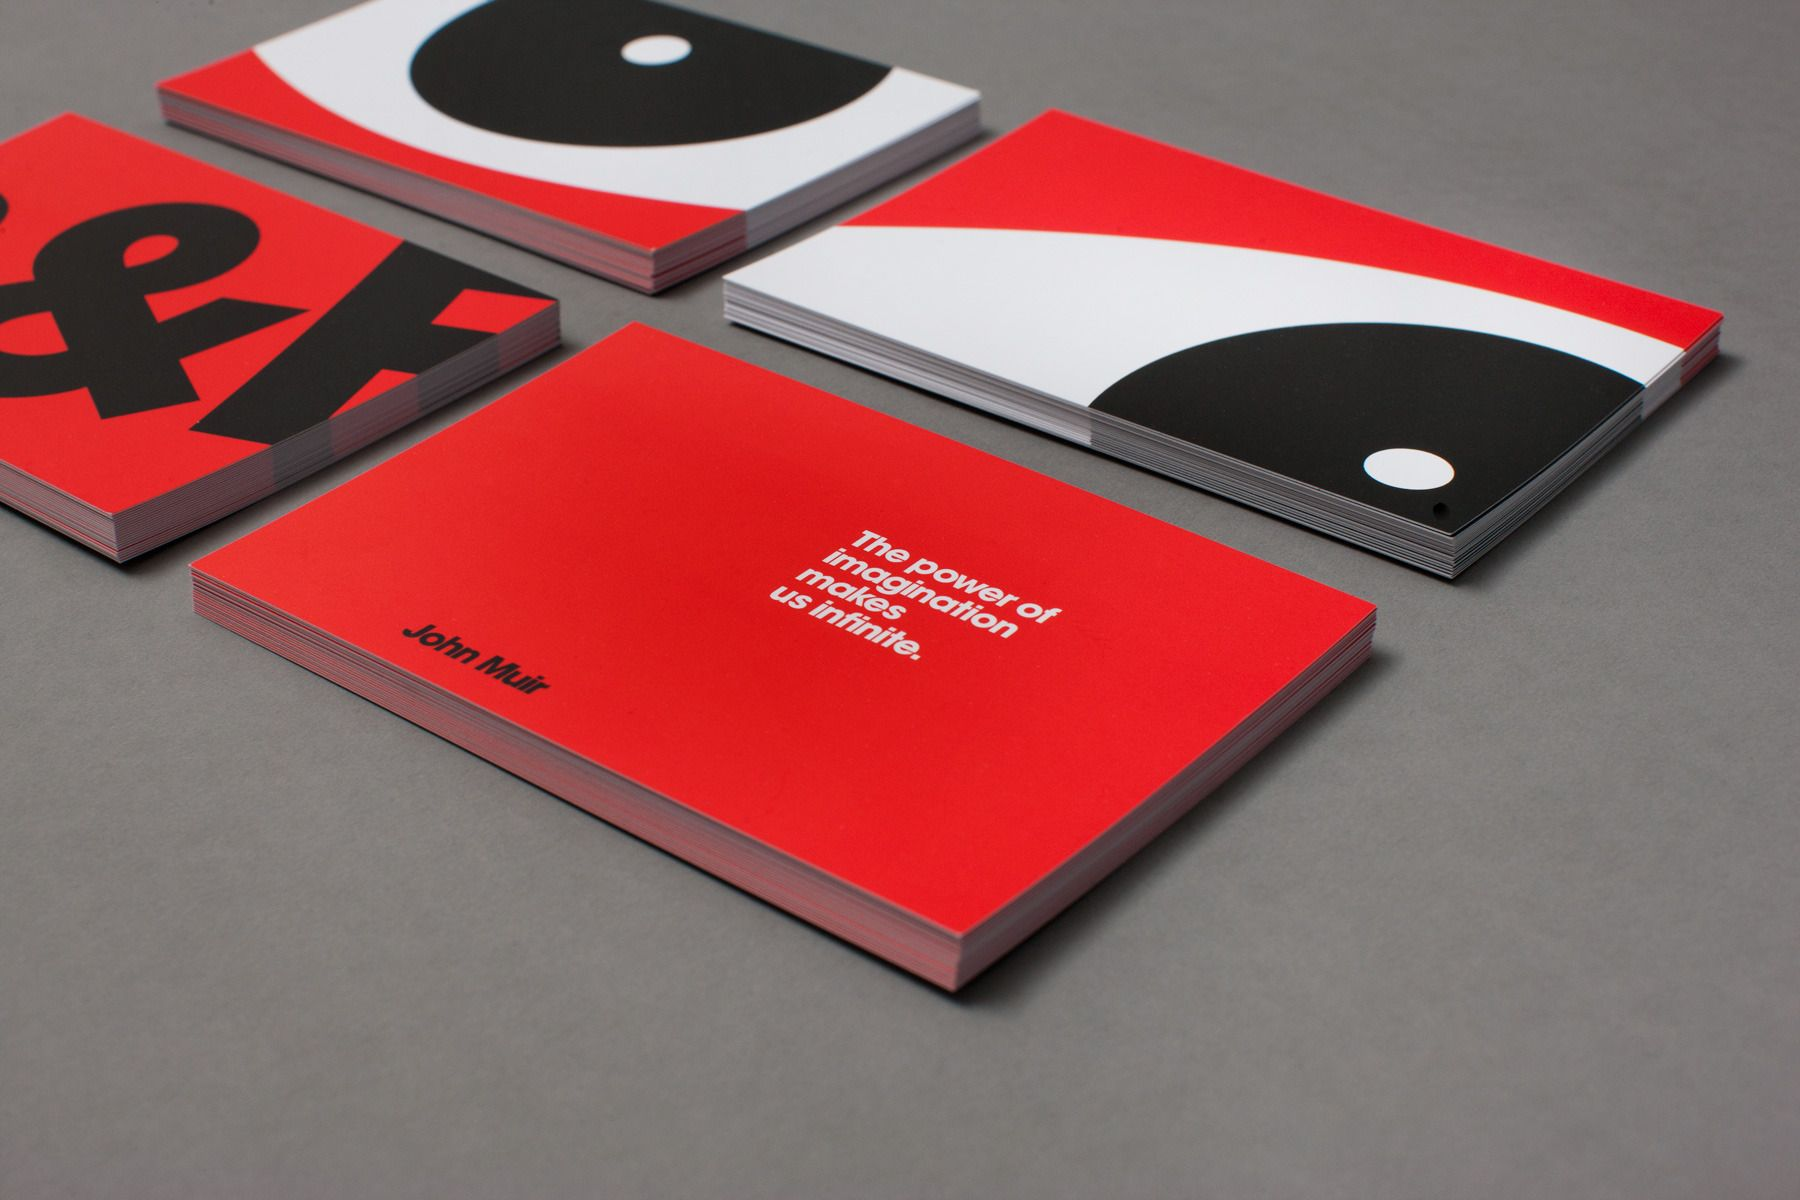 B Studio Collateral